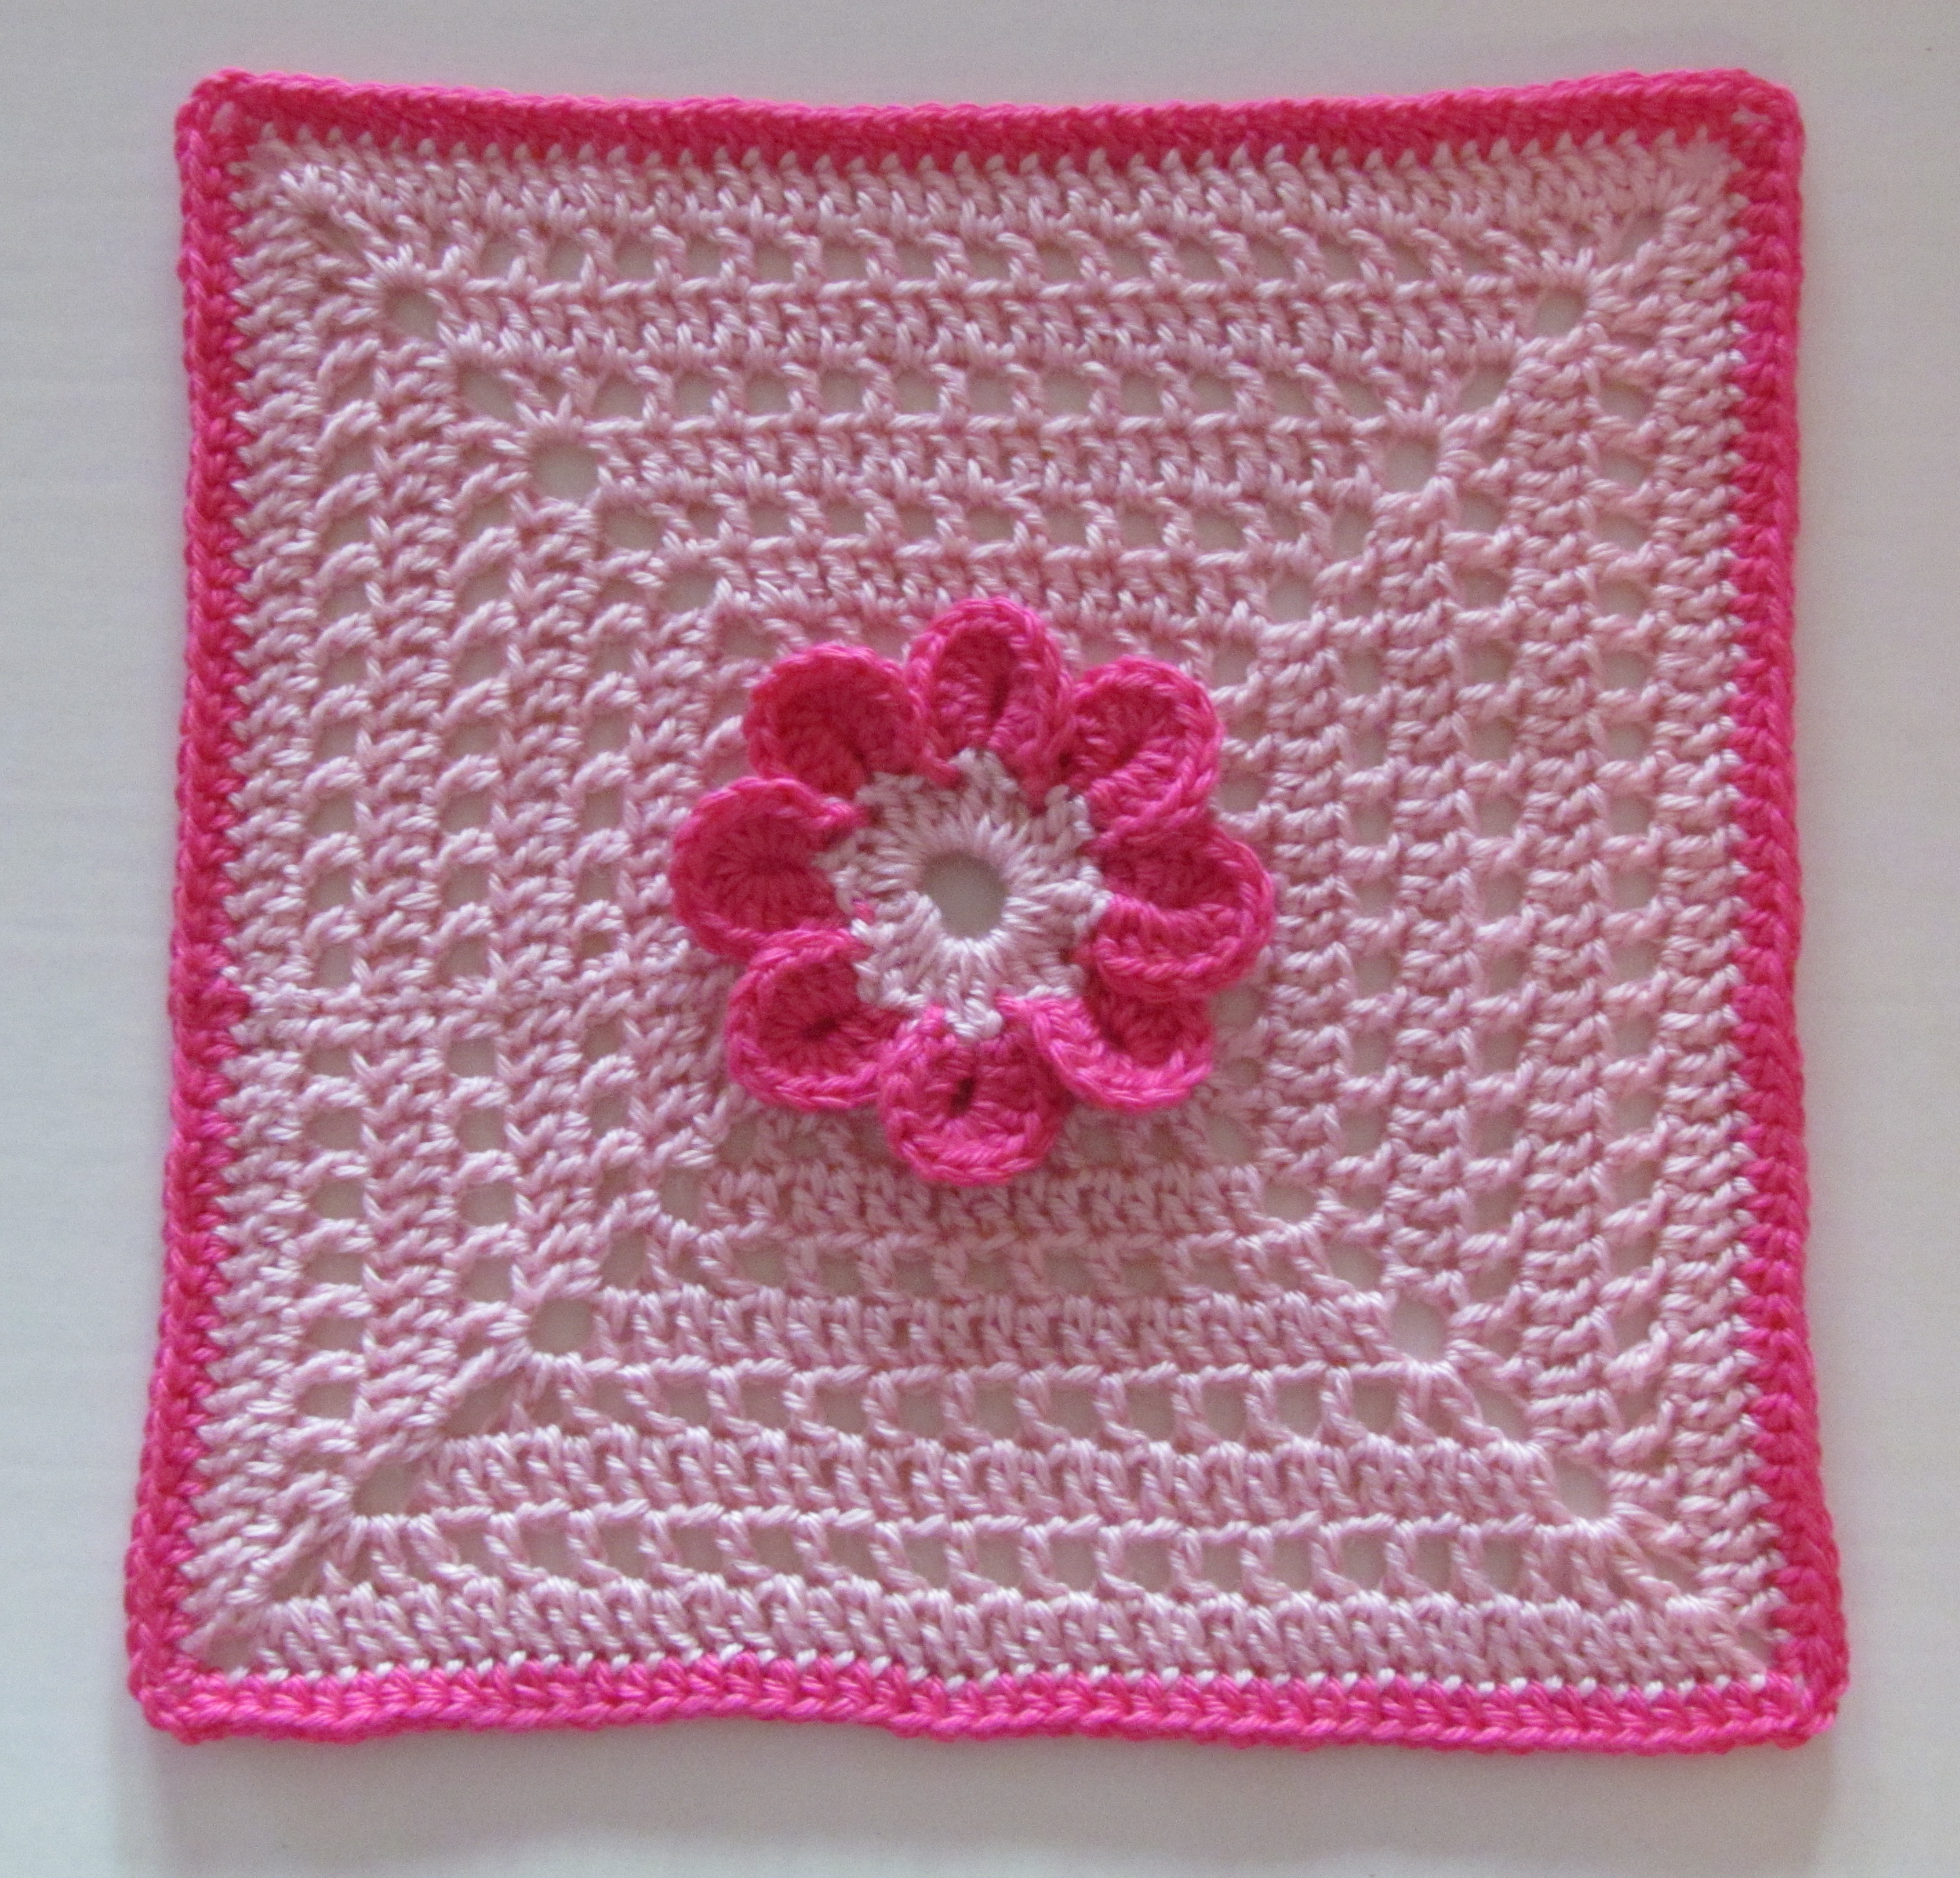 Crochet Square Patterns New 8 Petal Flower Afghan Square Free Crochet Pattern Of Marvelous 43 Photos Crochet Square Patterns